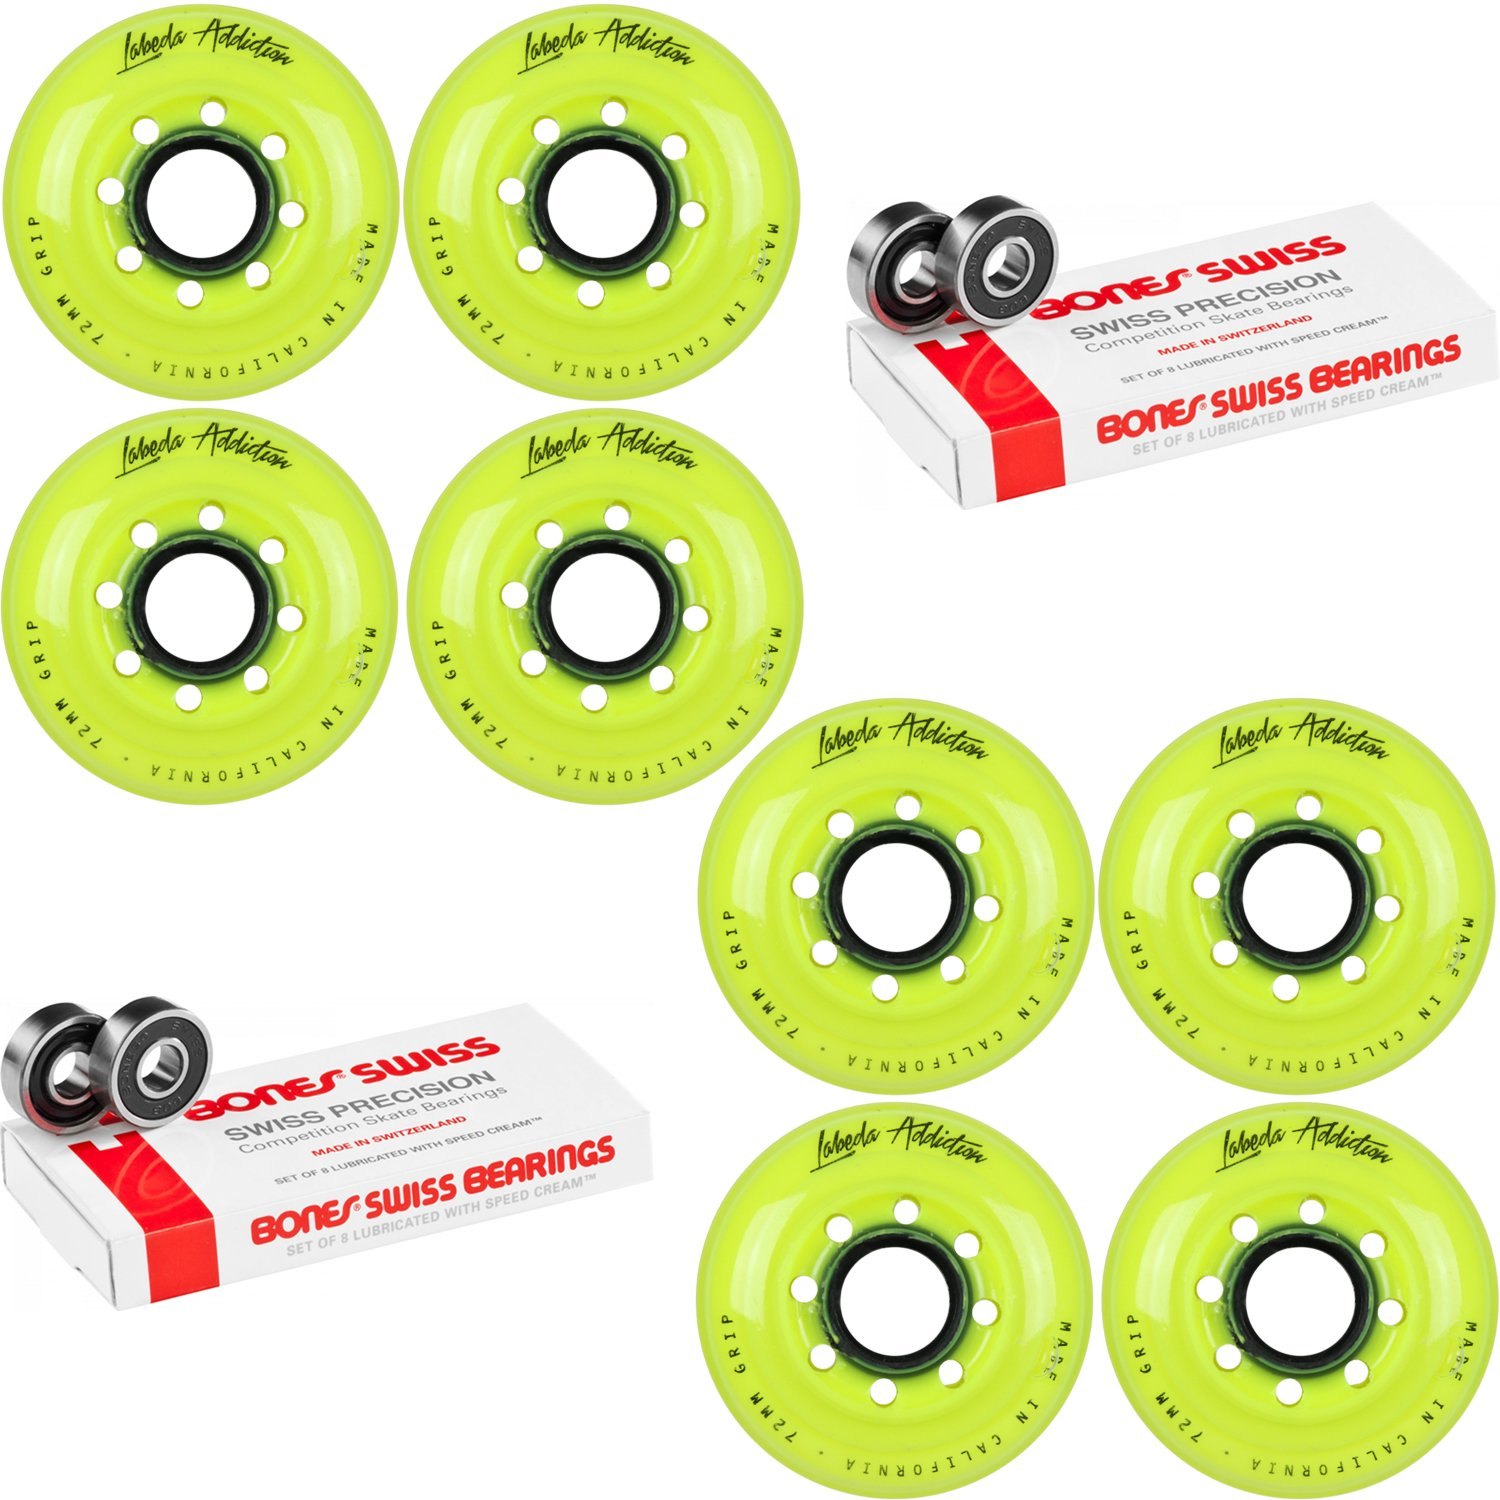 Labeda Inline Roller Hockey Skate Wheels Addiction Yellow 72mm 8 Set Bones Swiss